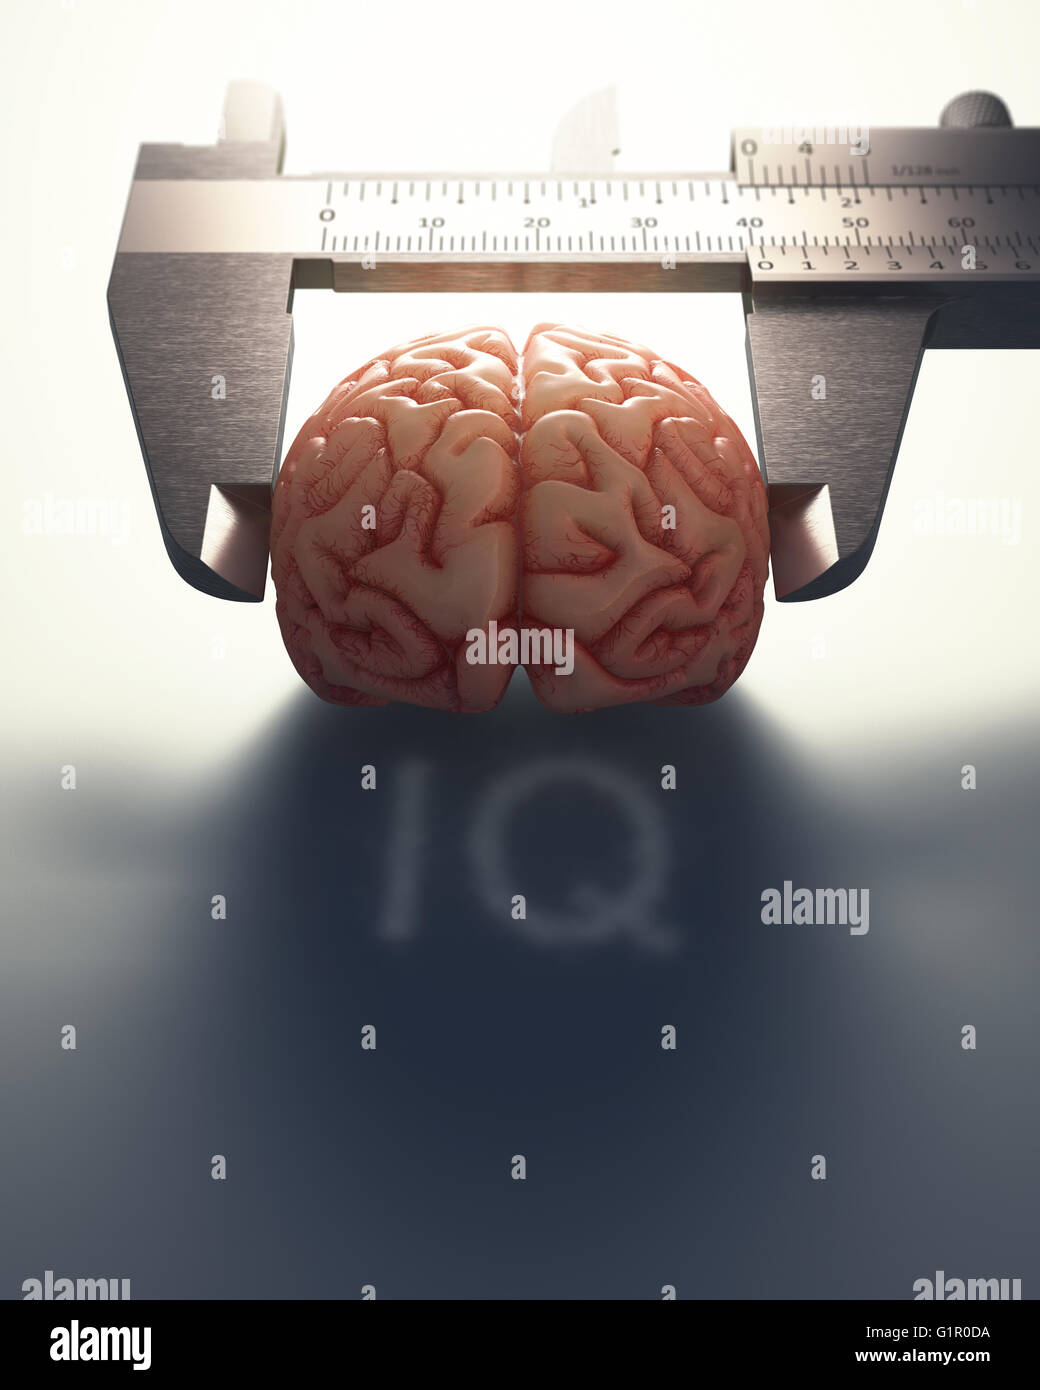 3D image concept of a caliper ruler measuring a human brain. It is a concept of the differences of the human mind. - Stock Image